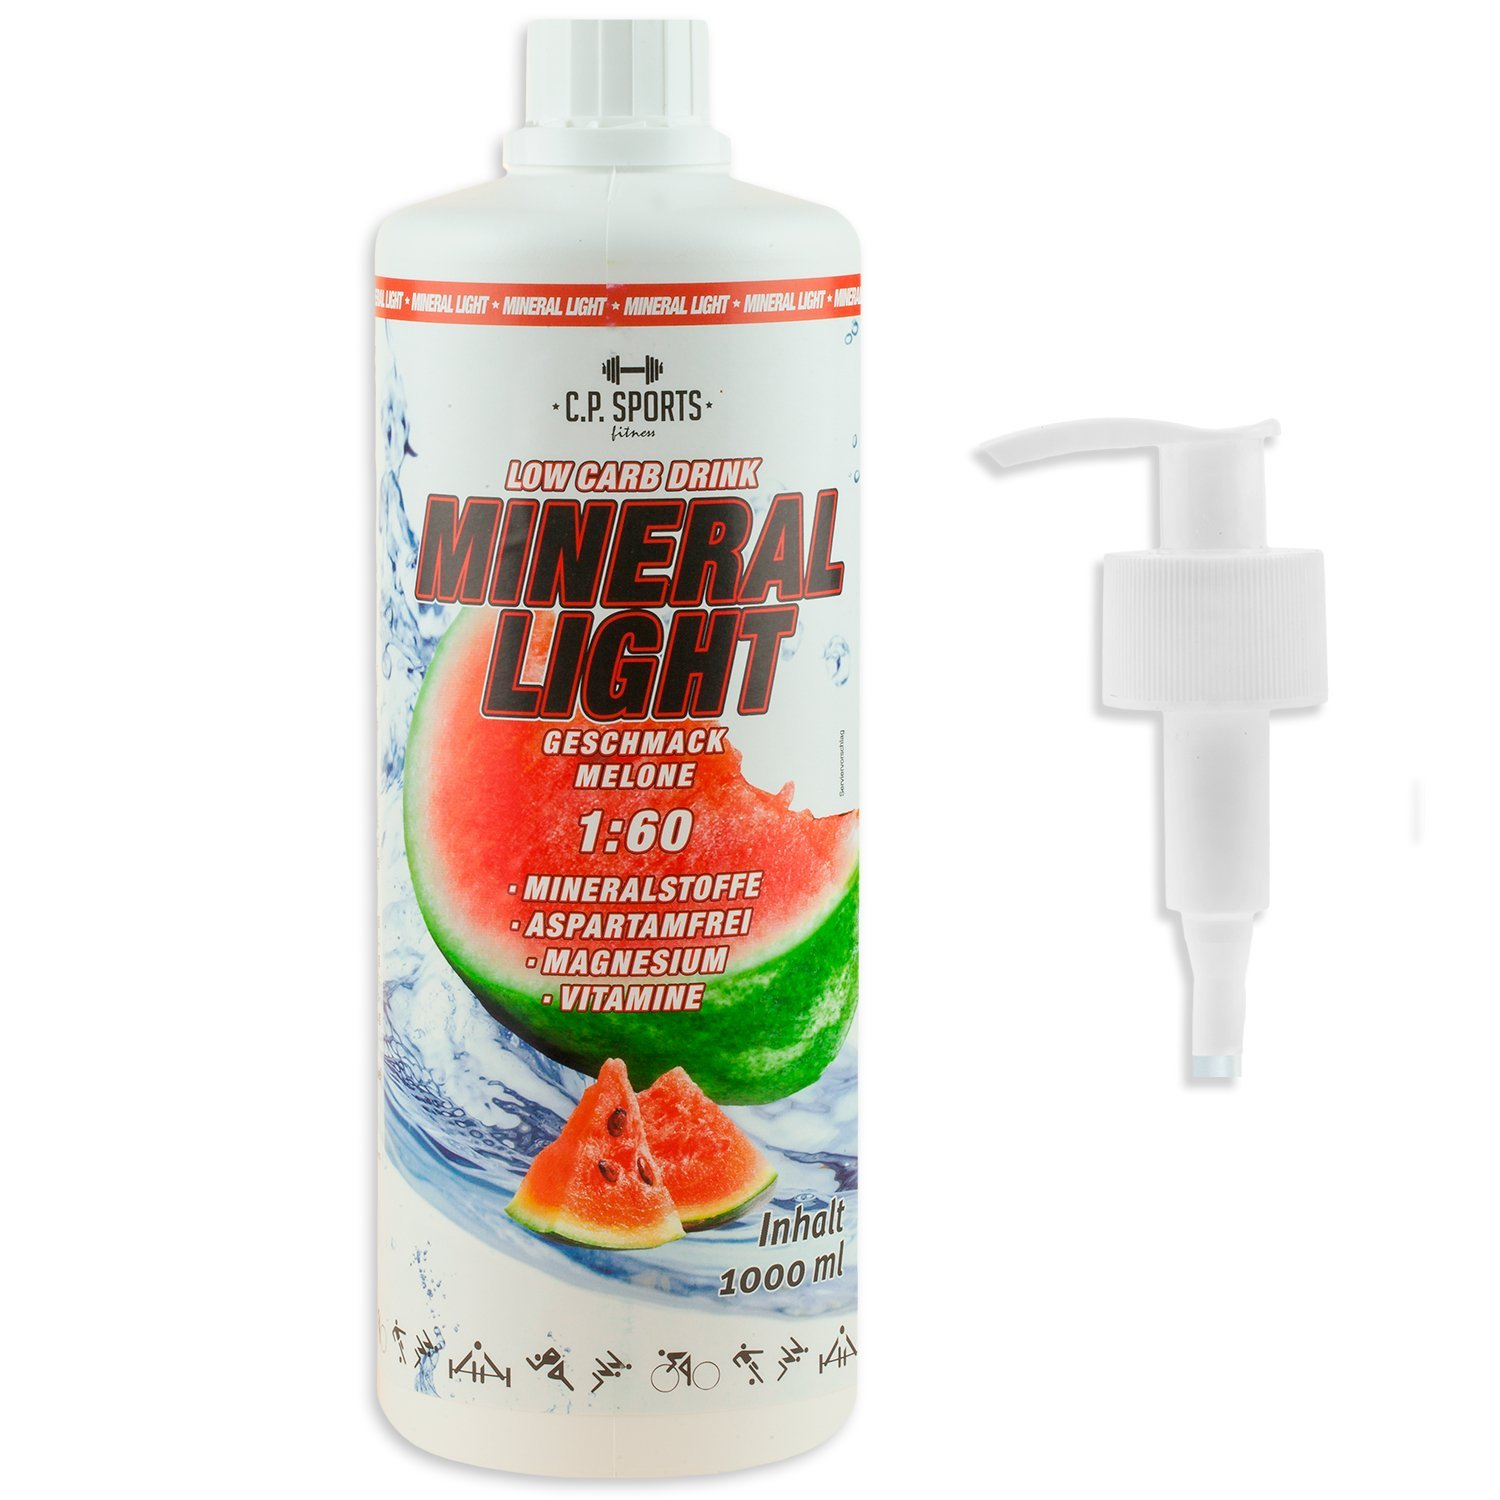 C.P. Sports Mineral Light - Concentrado de bebida de sirope de electrolitos, mineral y vitaminas, varios tipos, incluye dispensador, 1l/1000ml, melón: ...